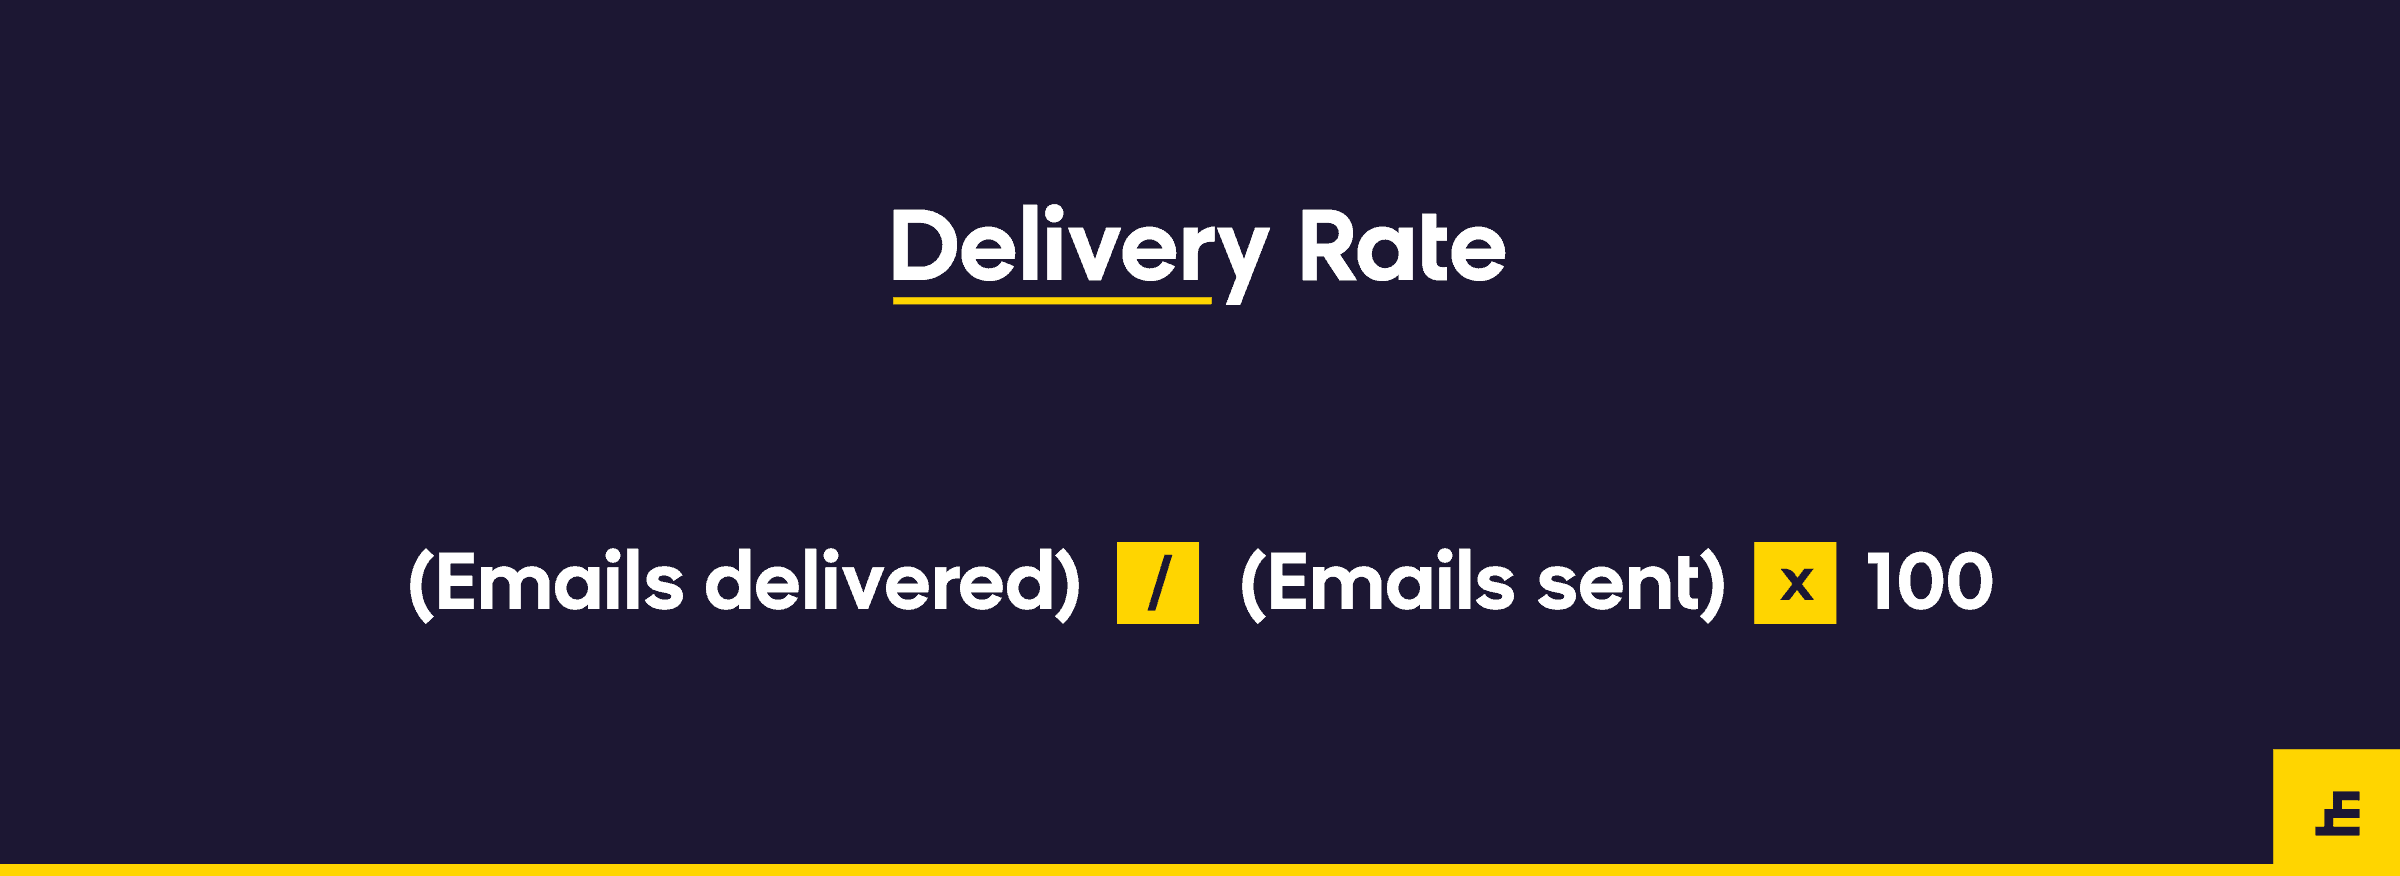 email marketing metric - delivery rate